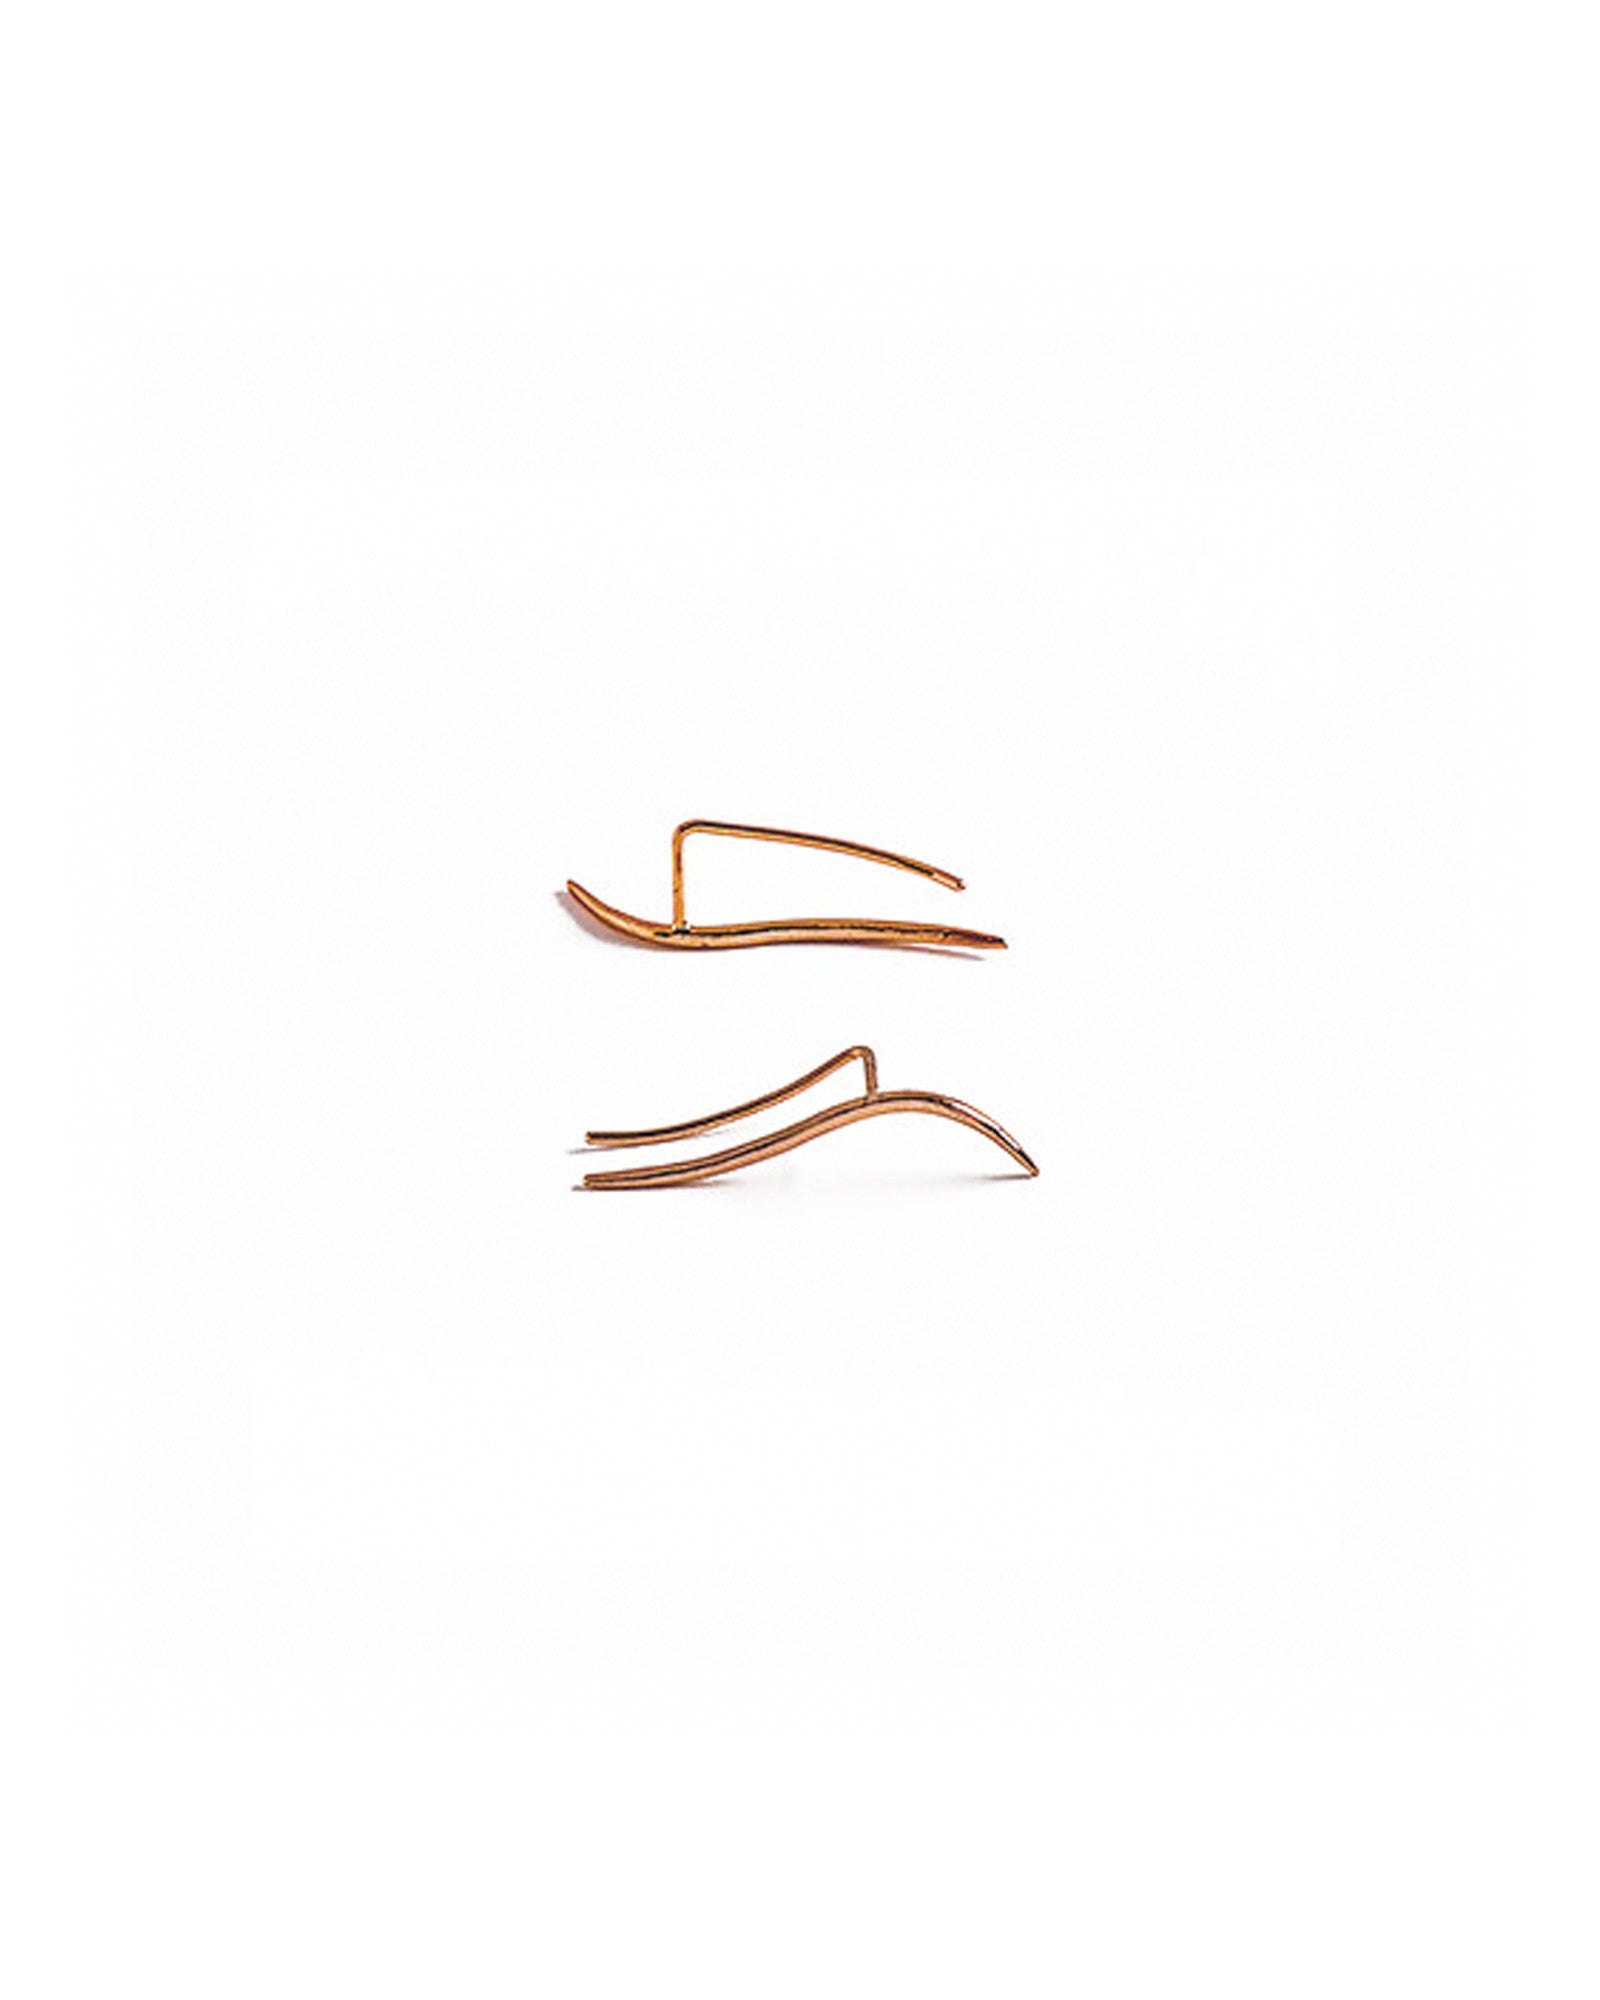 Knobbly Studio Calligraphic Ear Pin Rose Gold